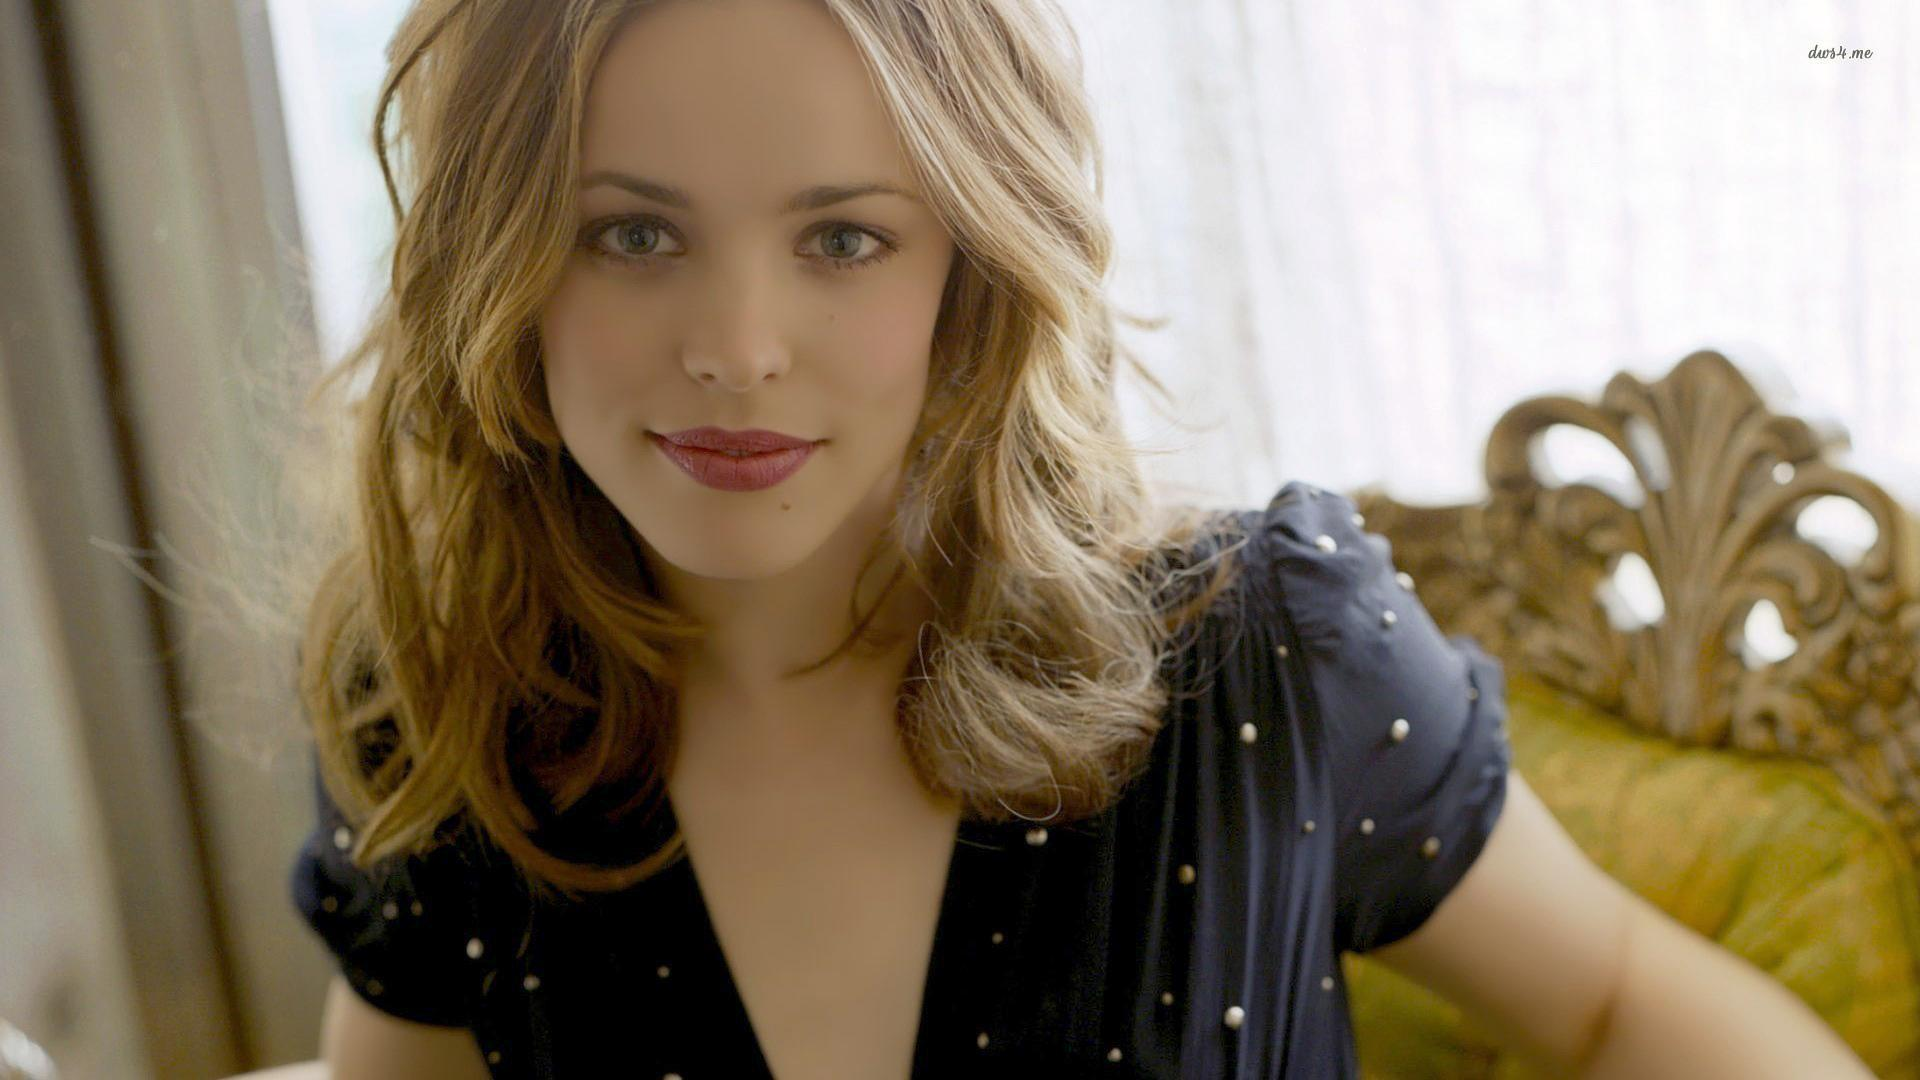 WATCH: Rachel McAdams Talks About Getting High For The First Time